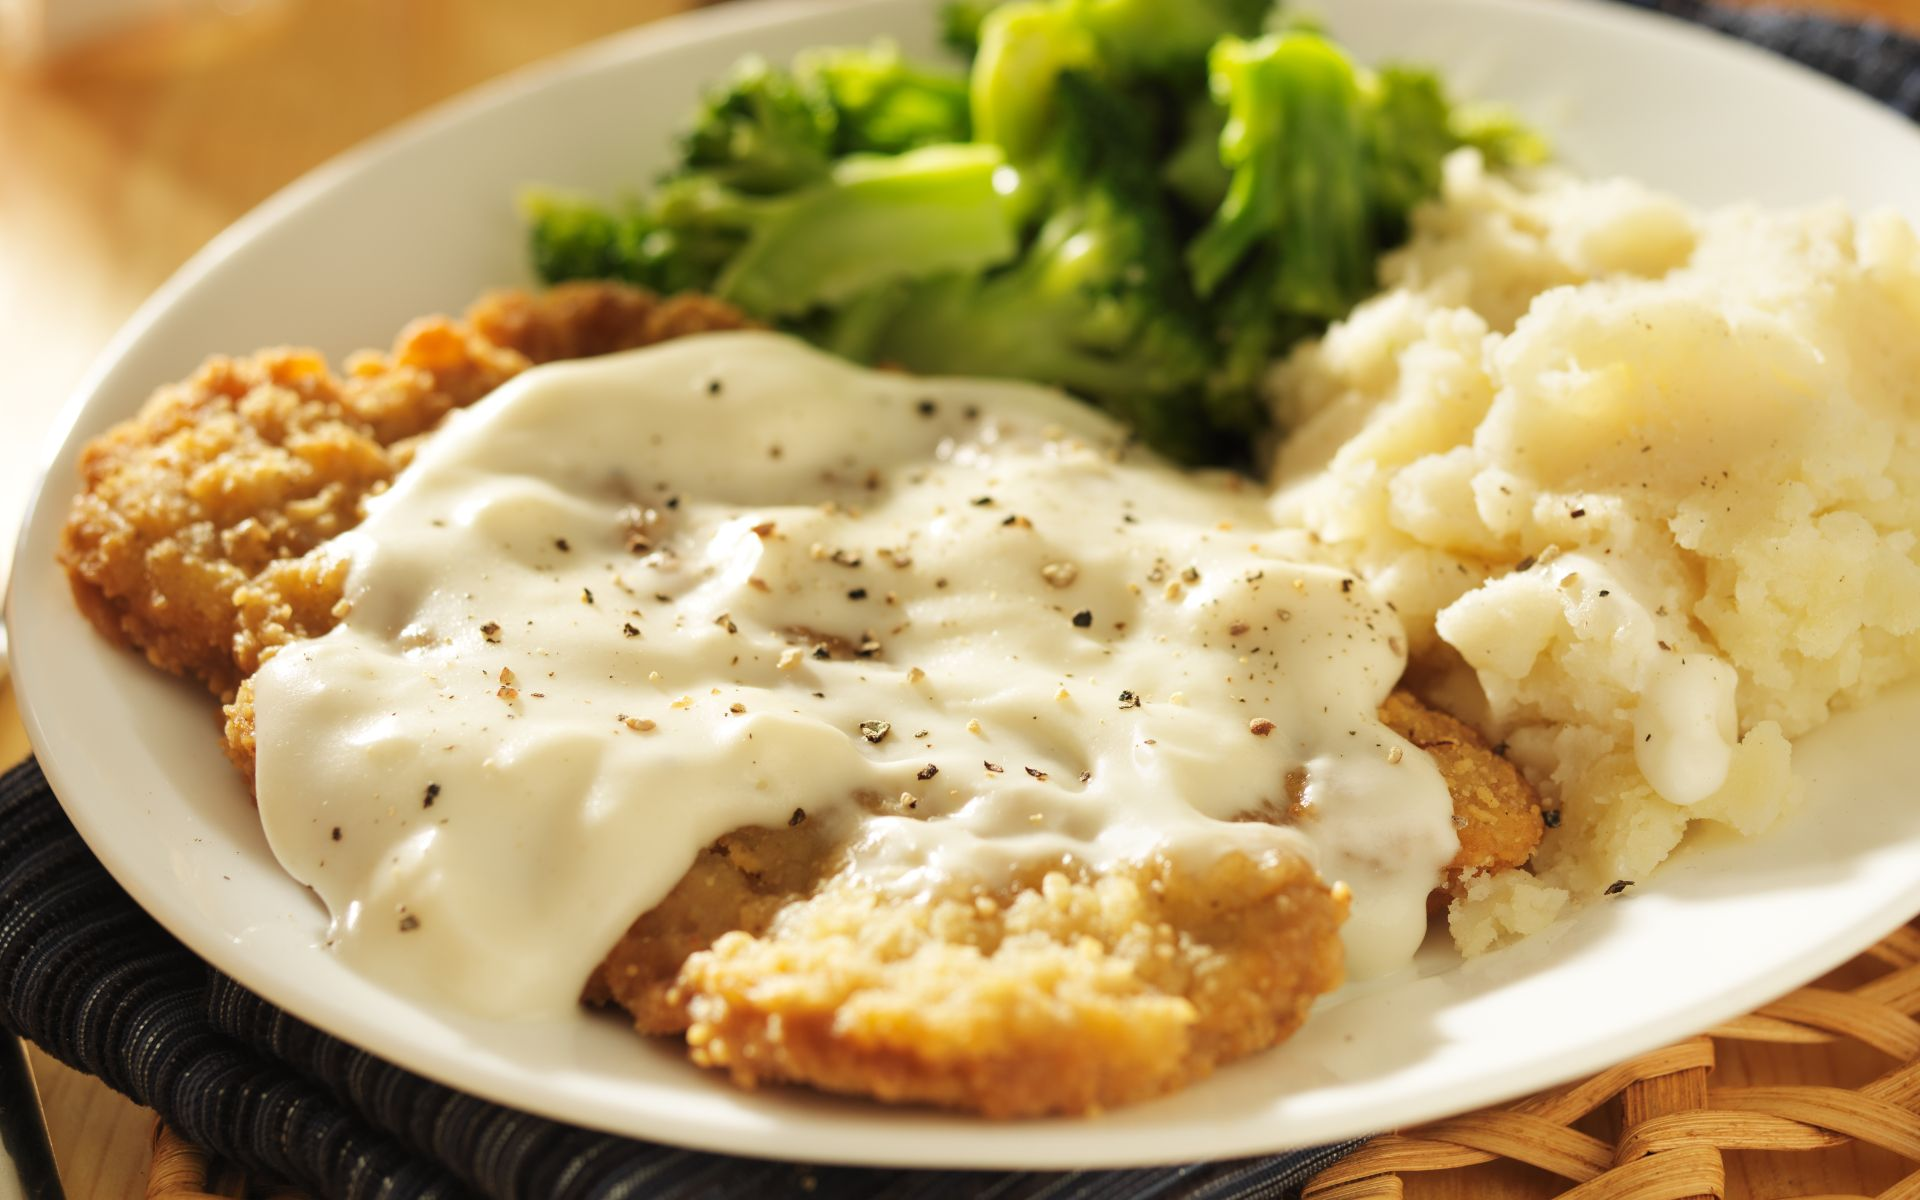 country fried steak with gravy, mashed potatoes and brocolli